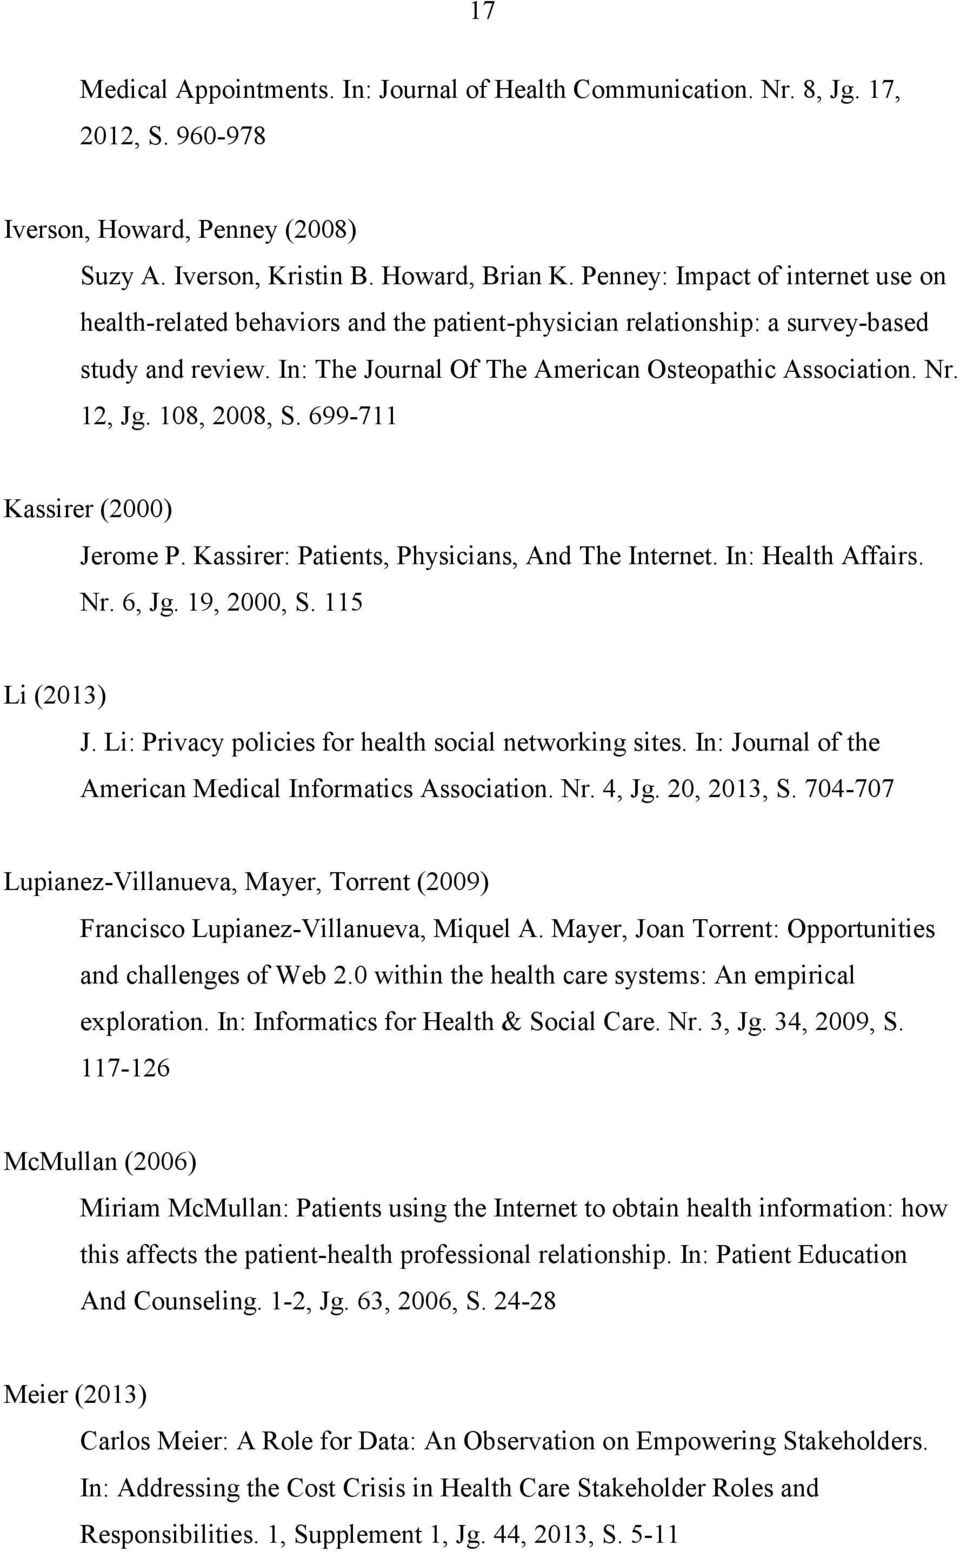 108, 2008, S. 699-711 Kassirer (2000) Jerome P. Kassirer: Patients, Physicians, And The Internet. In: Health Affairs. Nr. 6, Jg. 19, 2000, S. 115 Li (2013) J.